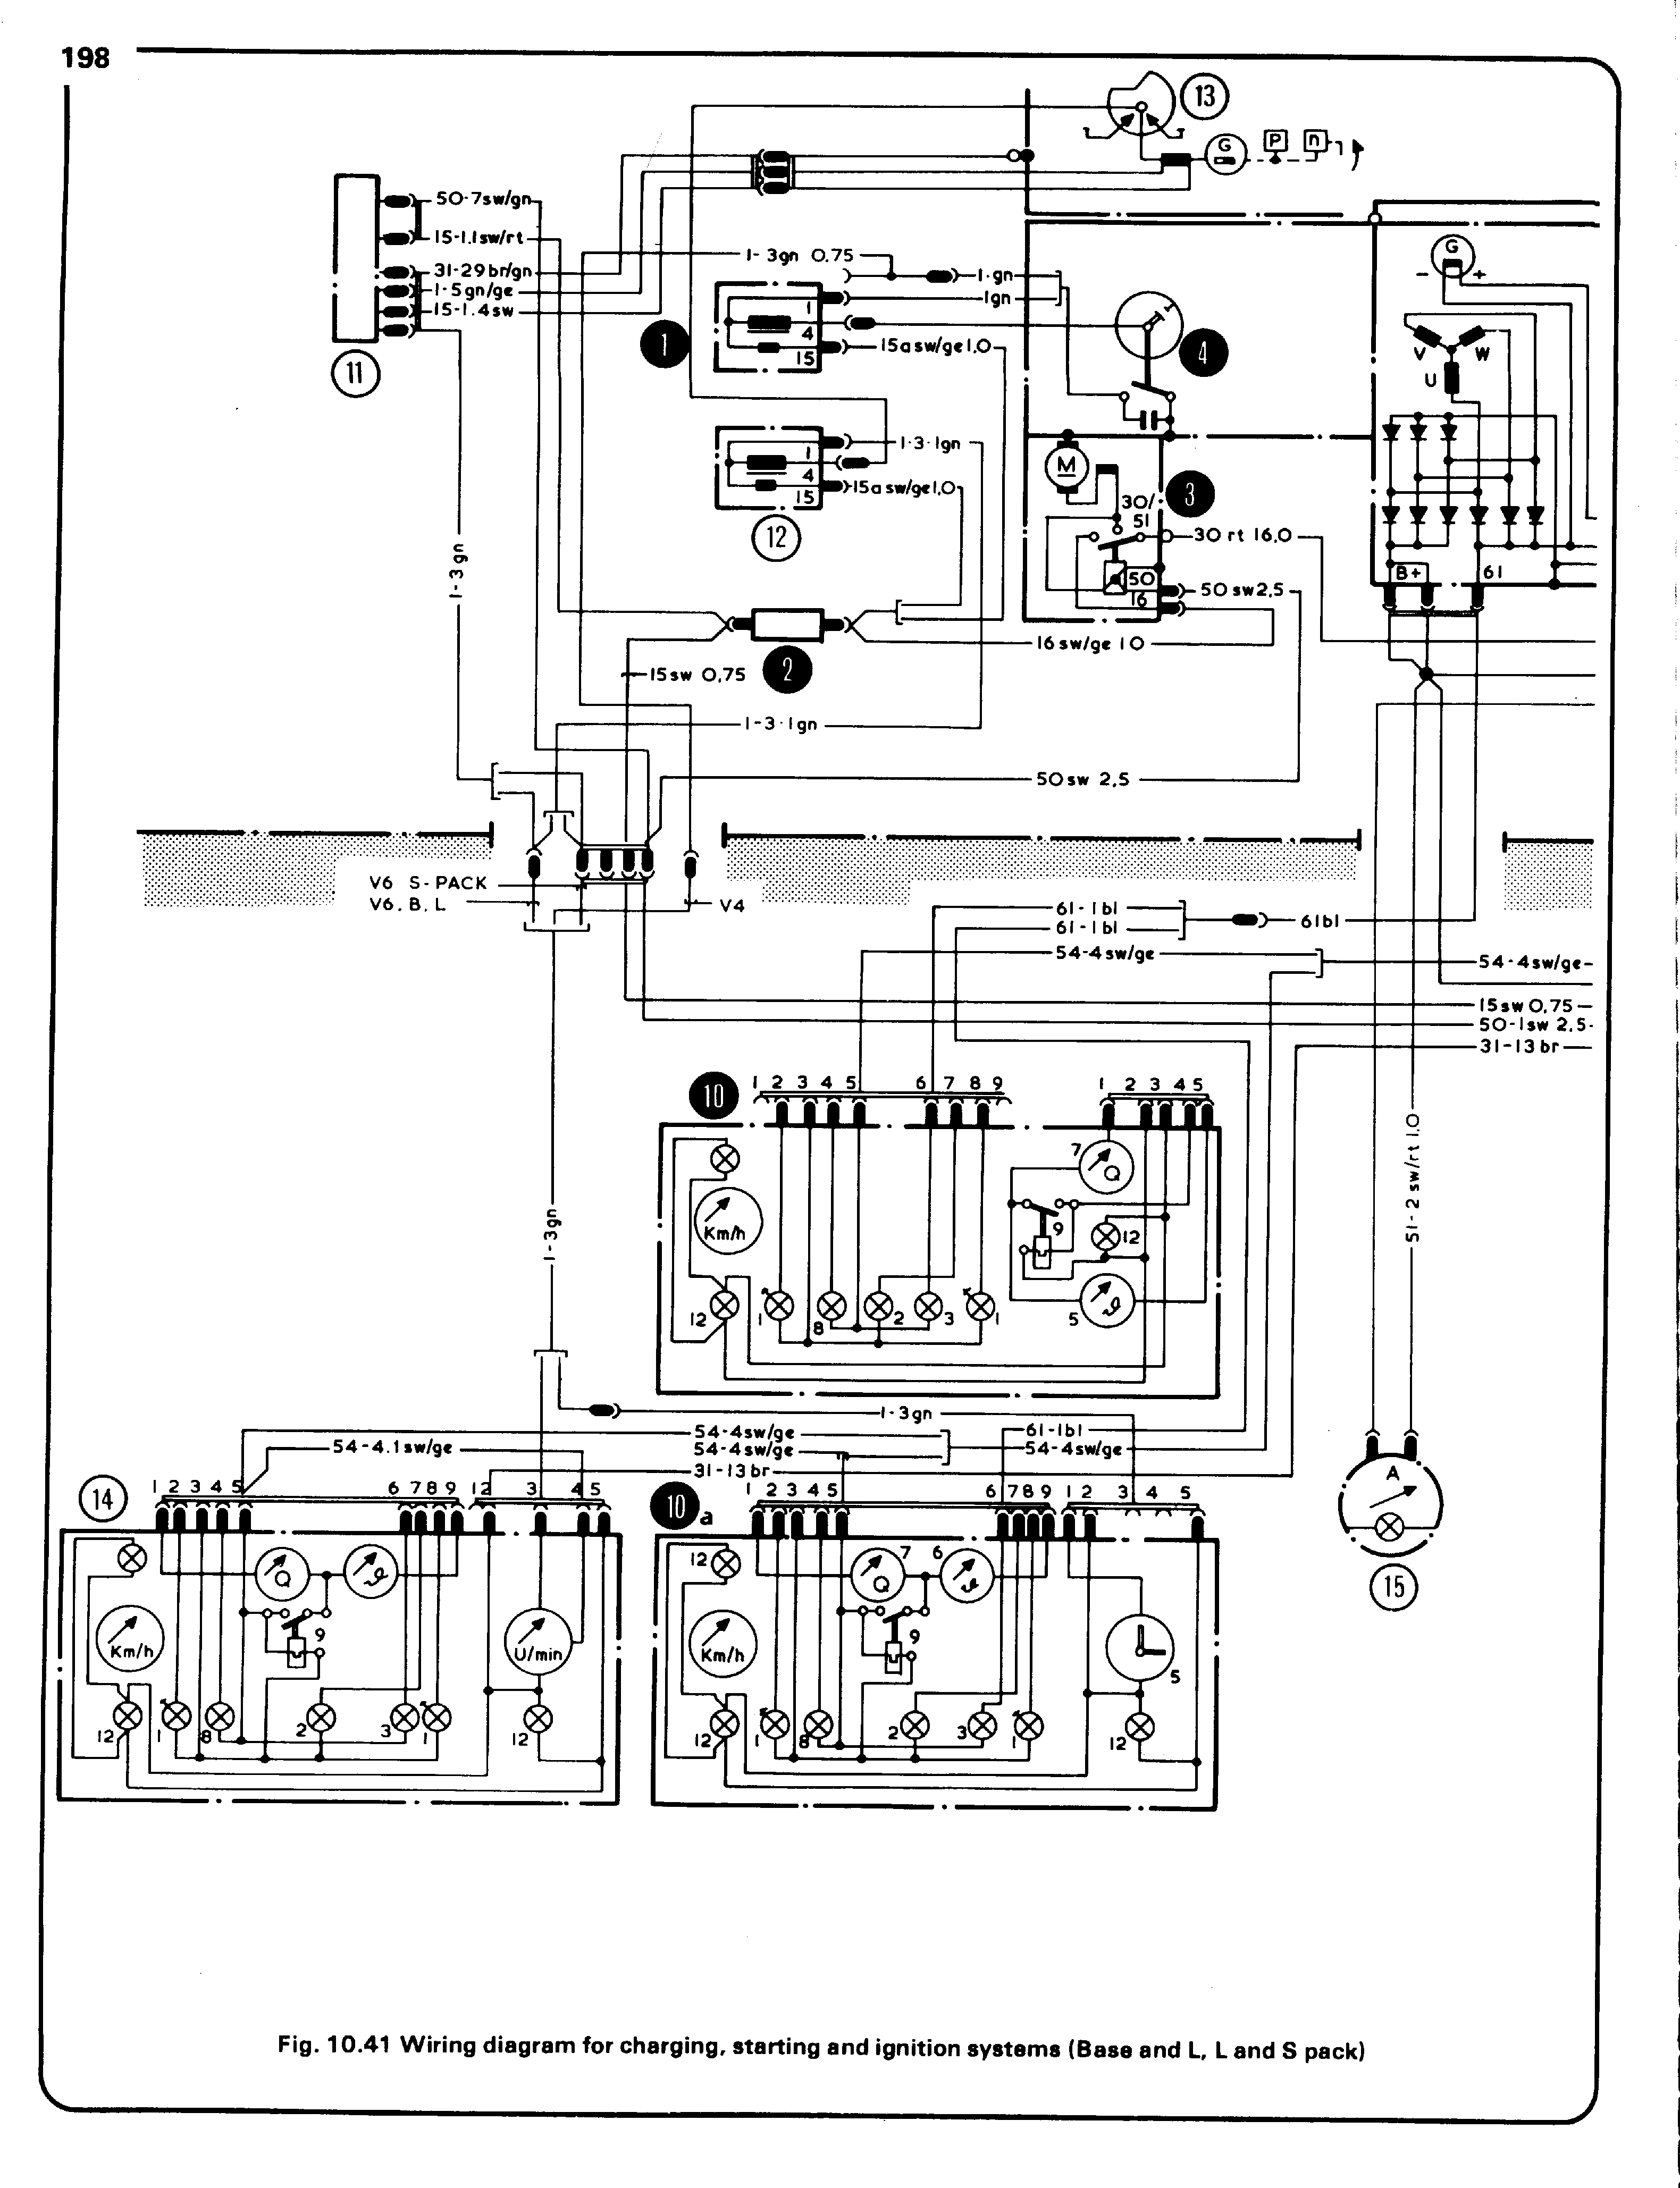 ignition diagram 1 102k